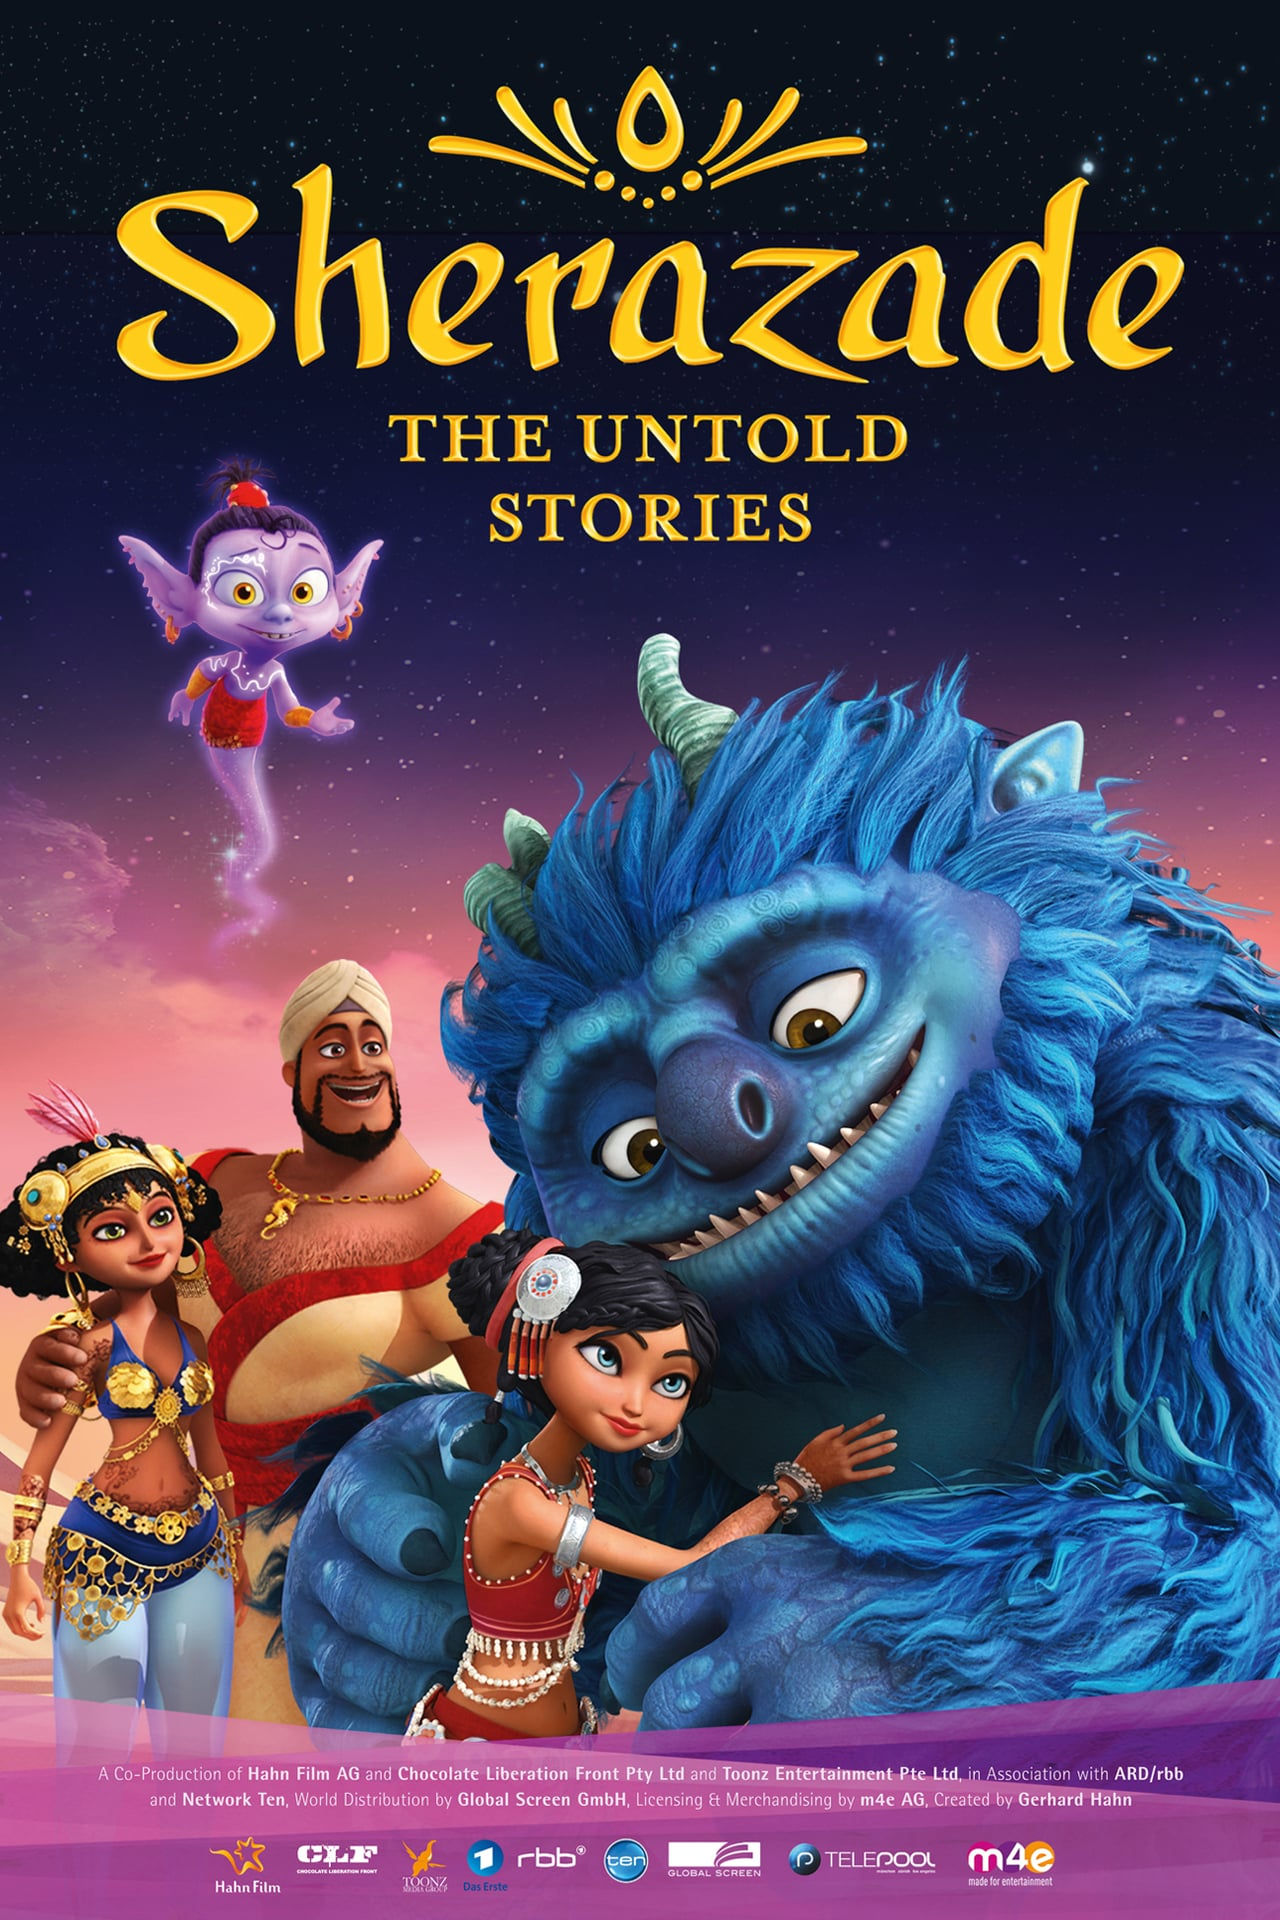 FILM   Sherazade - The Untold Stories   DIRECTOR   Shane Devries,Ralph Niemeyer   COMPANY   Hahn Film AG, Chacolate Liberation Font   Format   Animation, Adventure   YEAR   2017   Job   dialogue editor: adr editor    WEBSITE